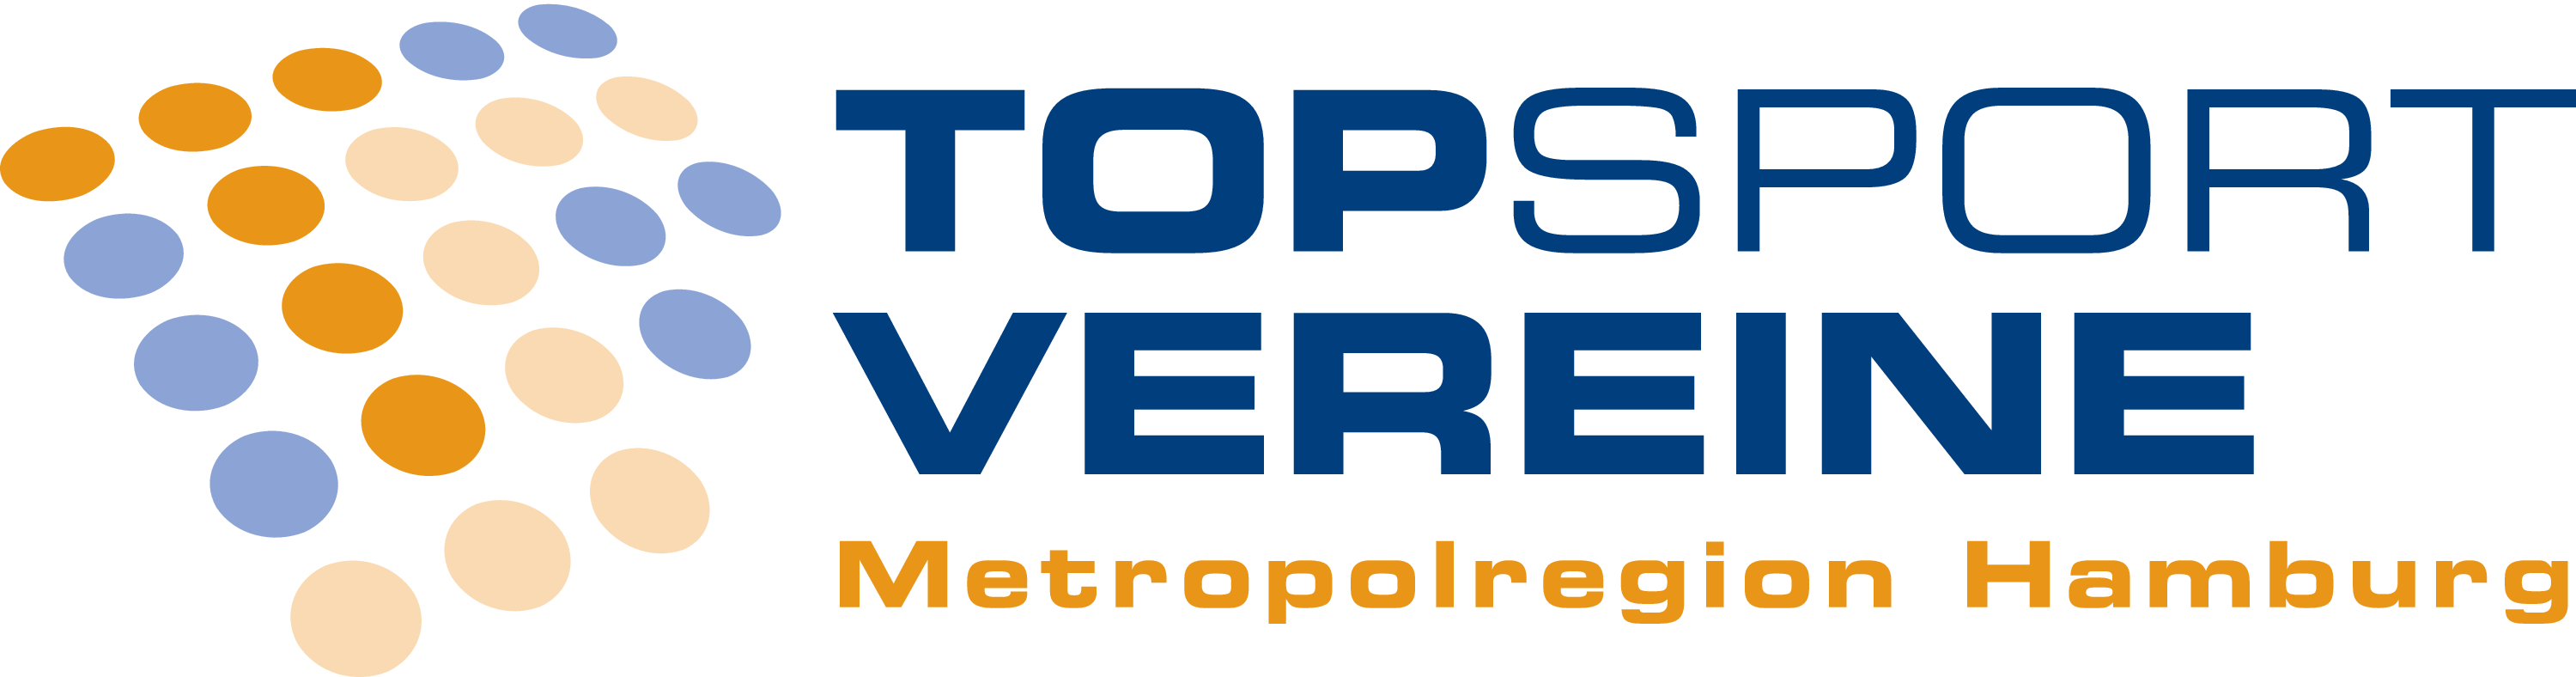 topsportverein